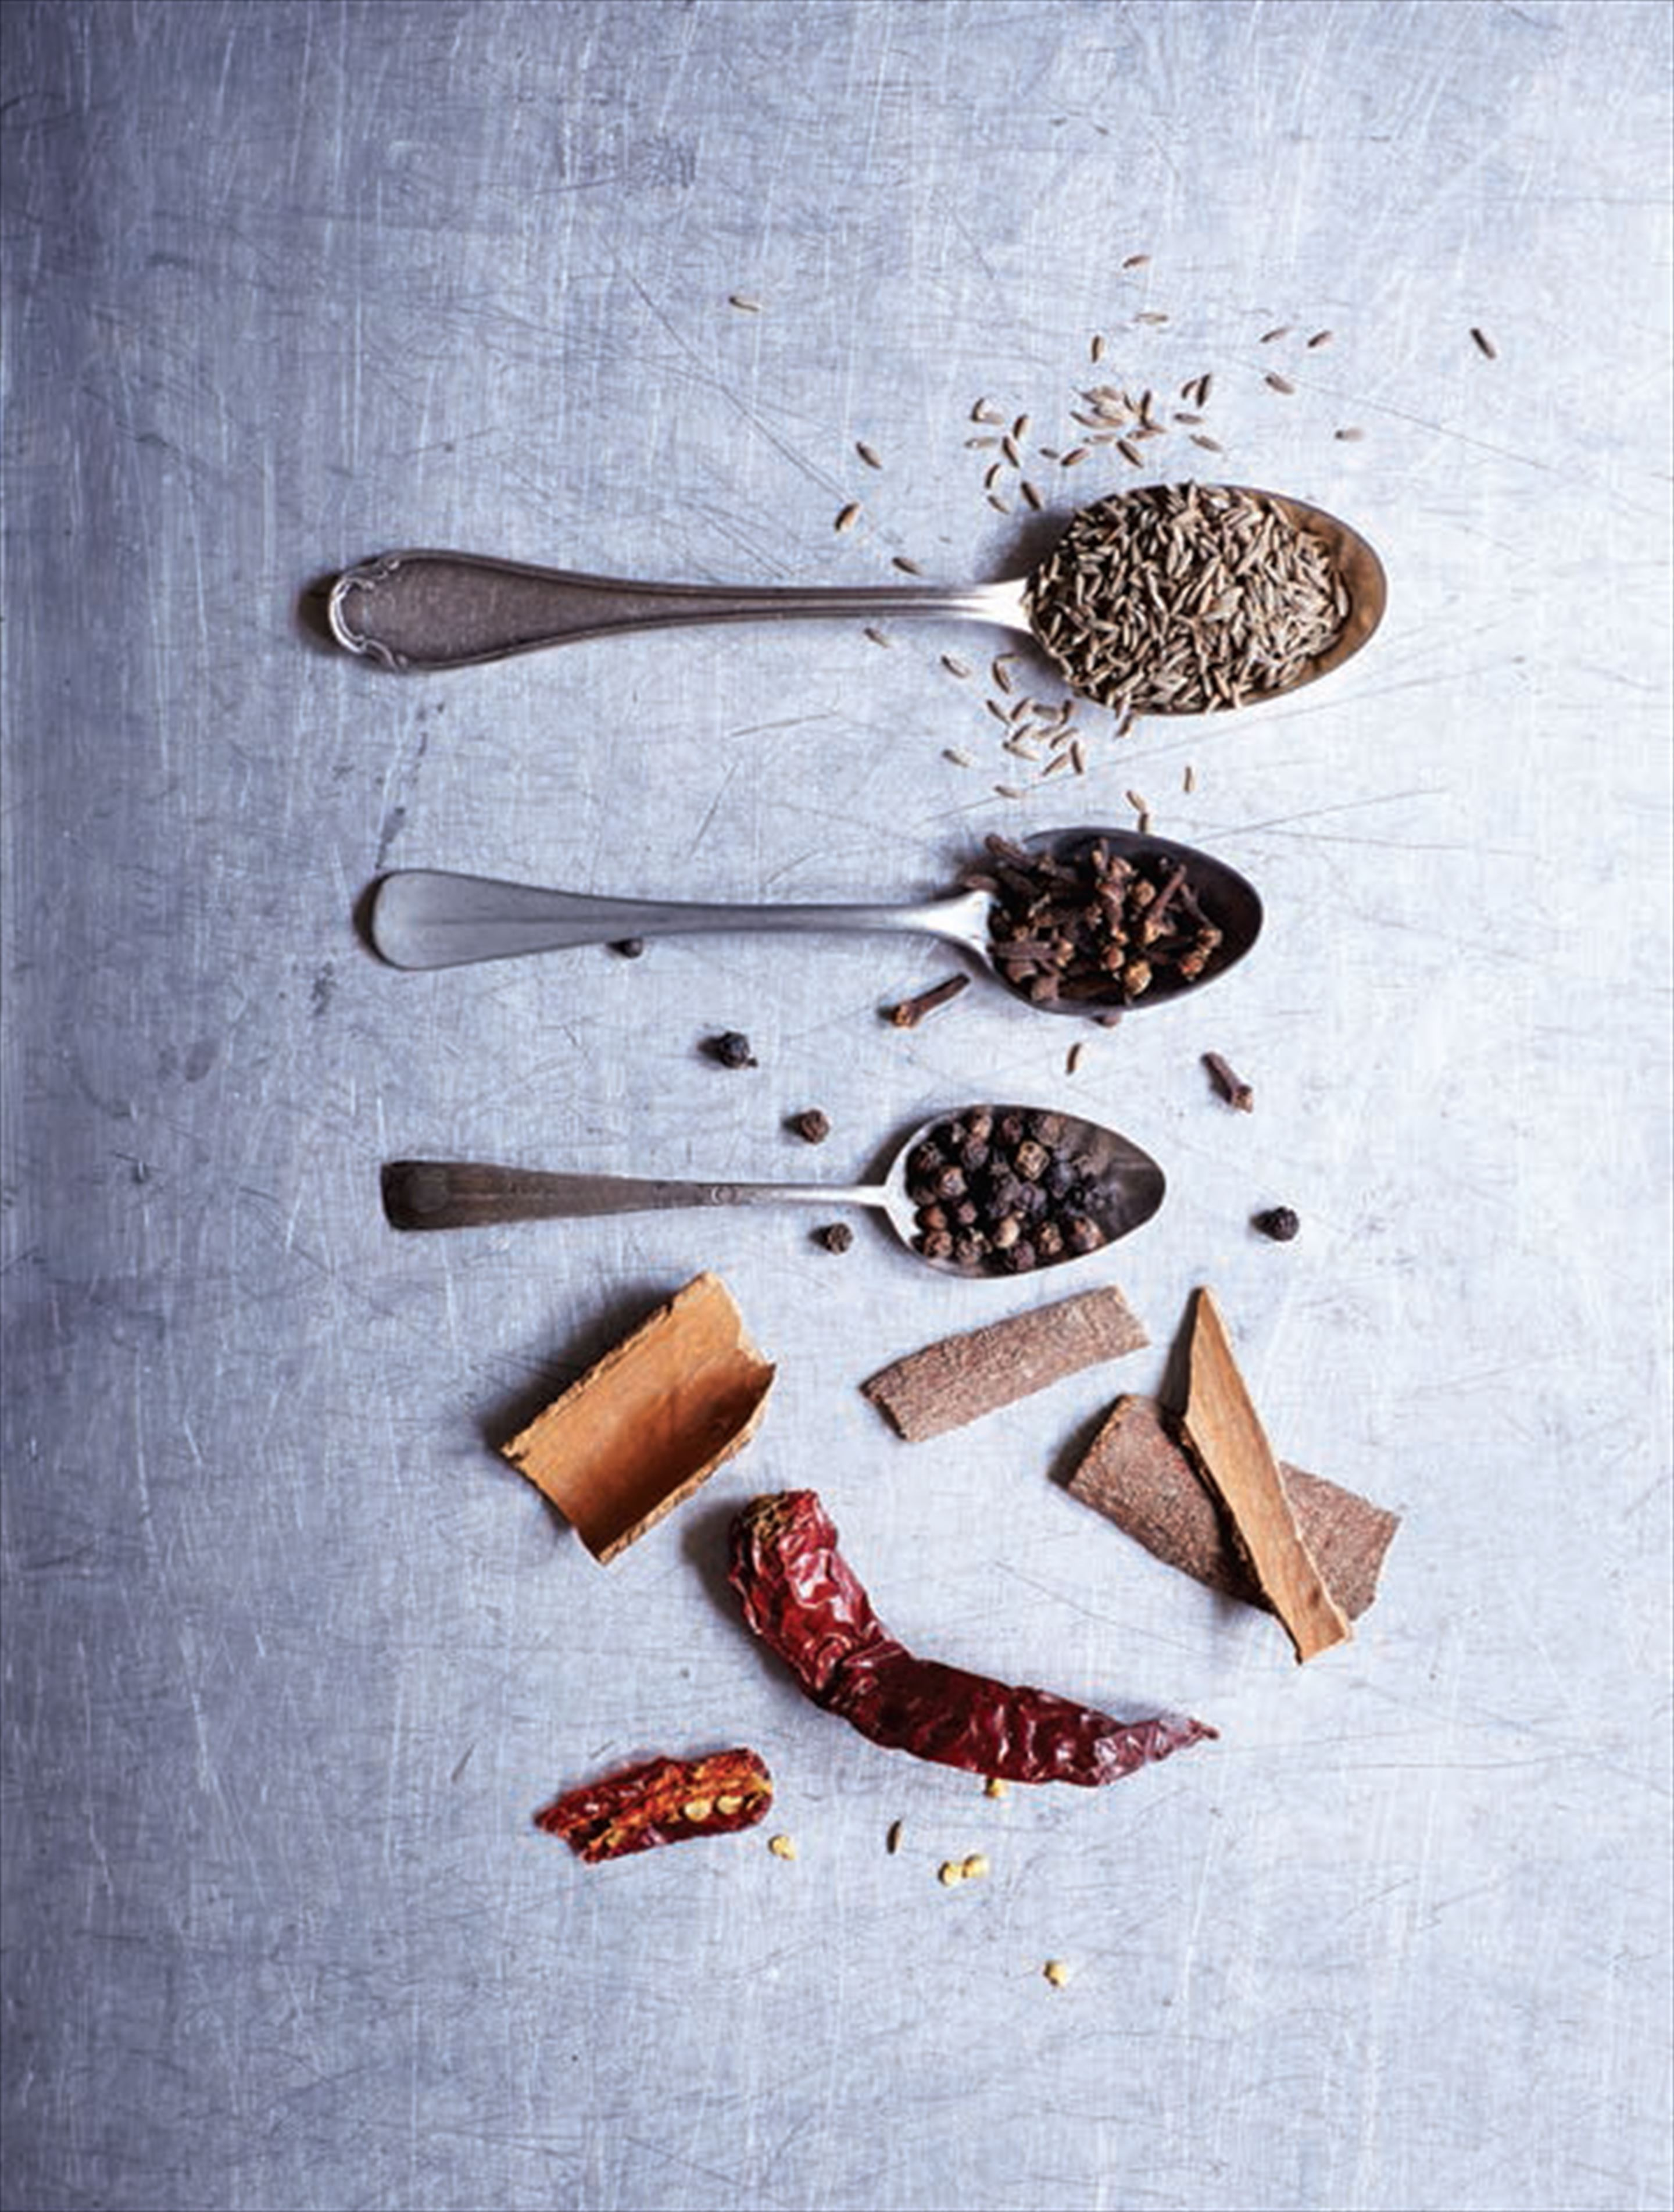 Vindaloo spice mix